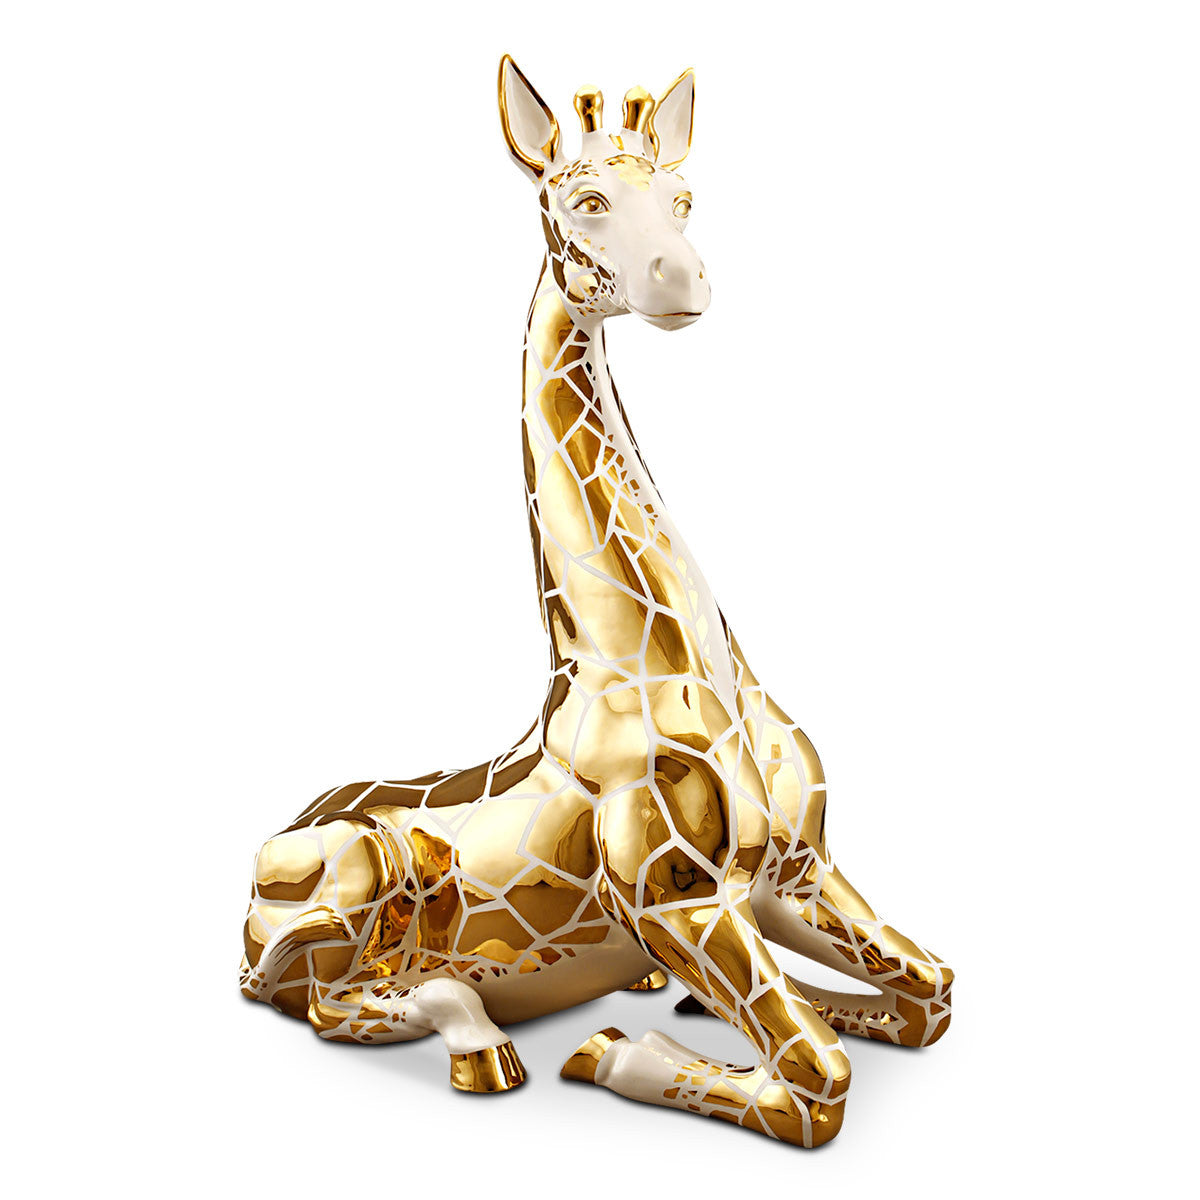 Hand Painted Italian Ceramic giraffe statue-24Kt gold-animal gifts-luxury home decor-elegant accents